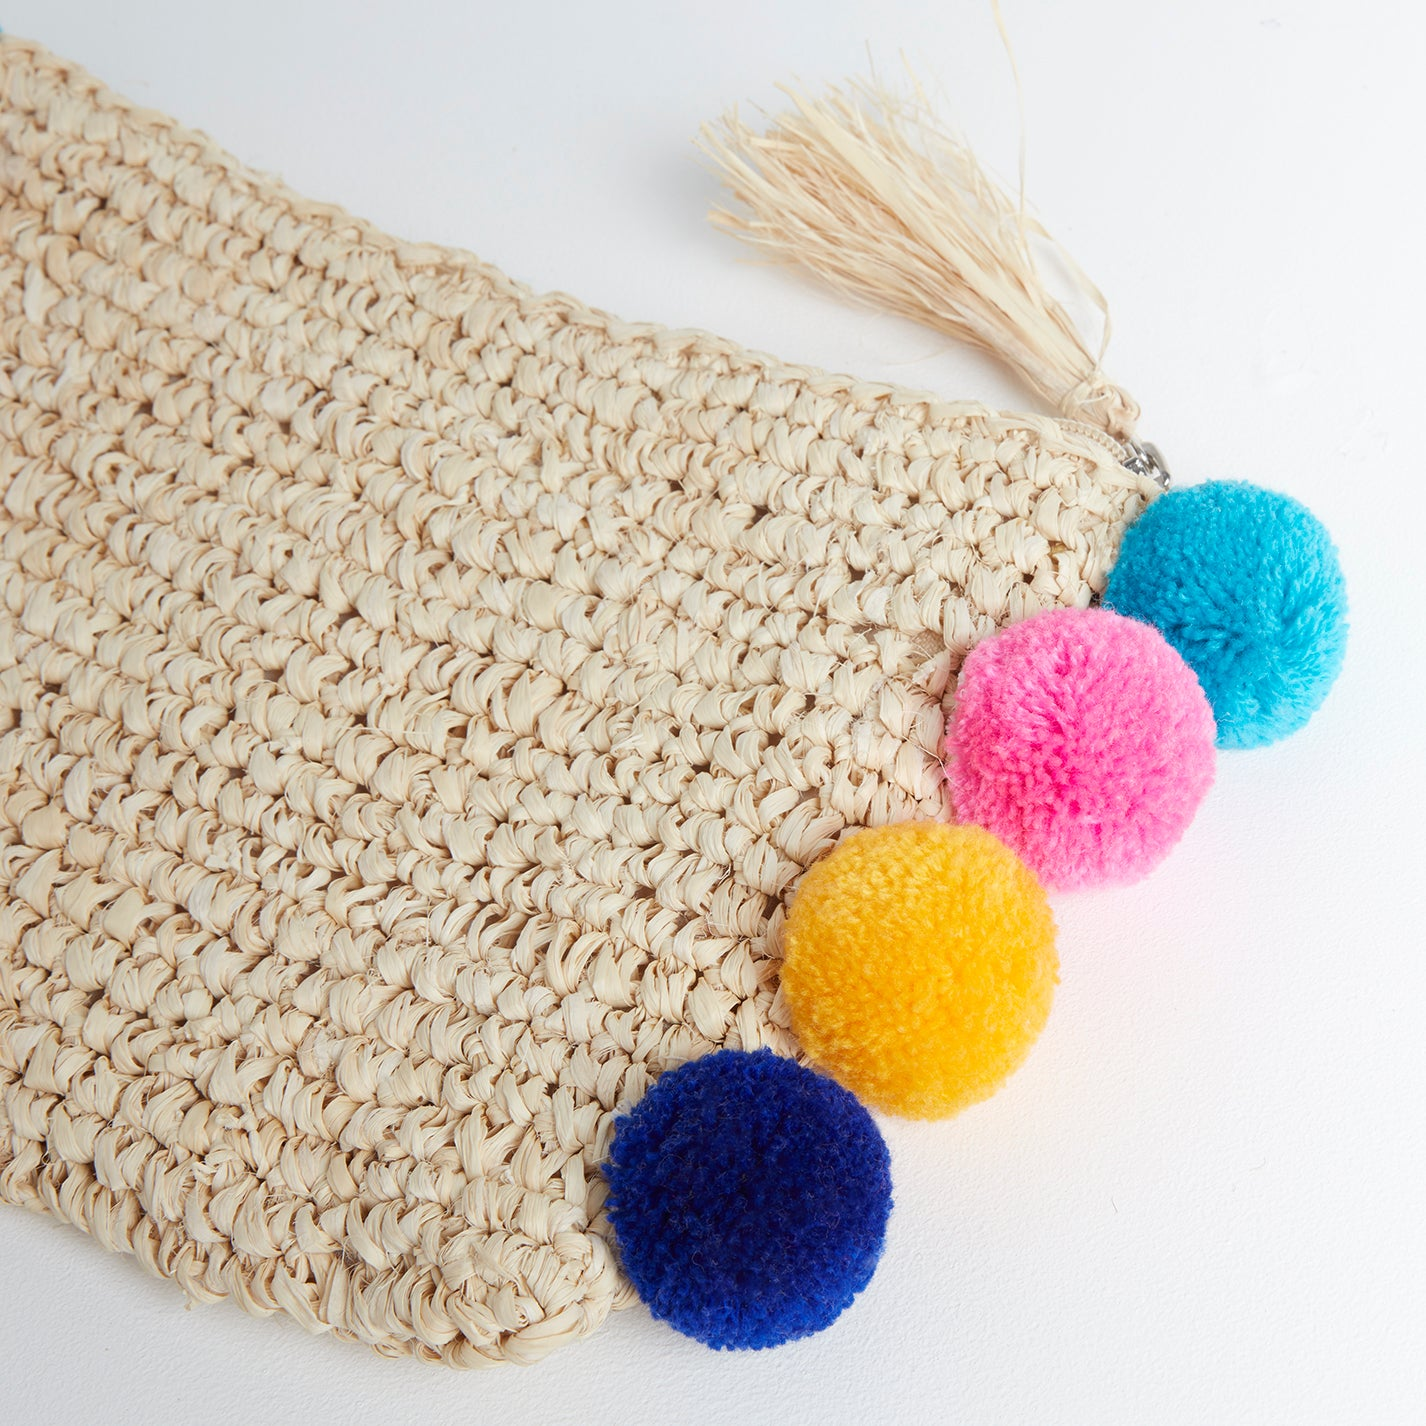 Castell Pom Pom Clutch Bag, Detail | Betsy & Floss